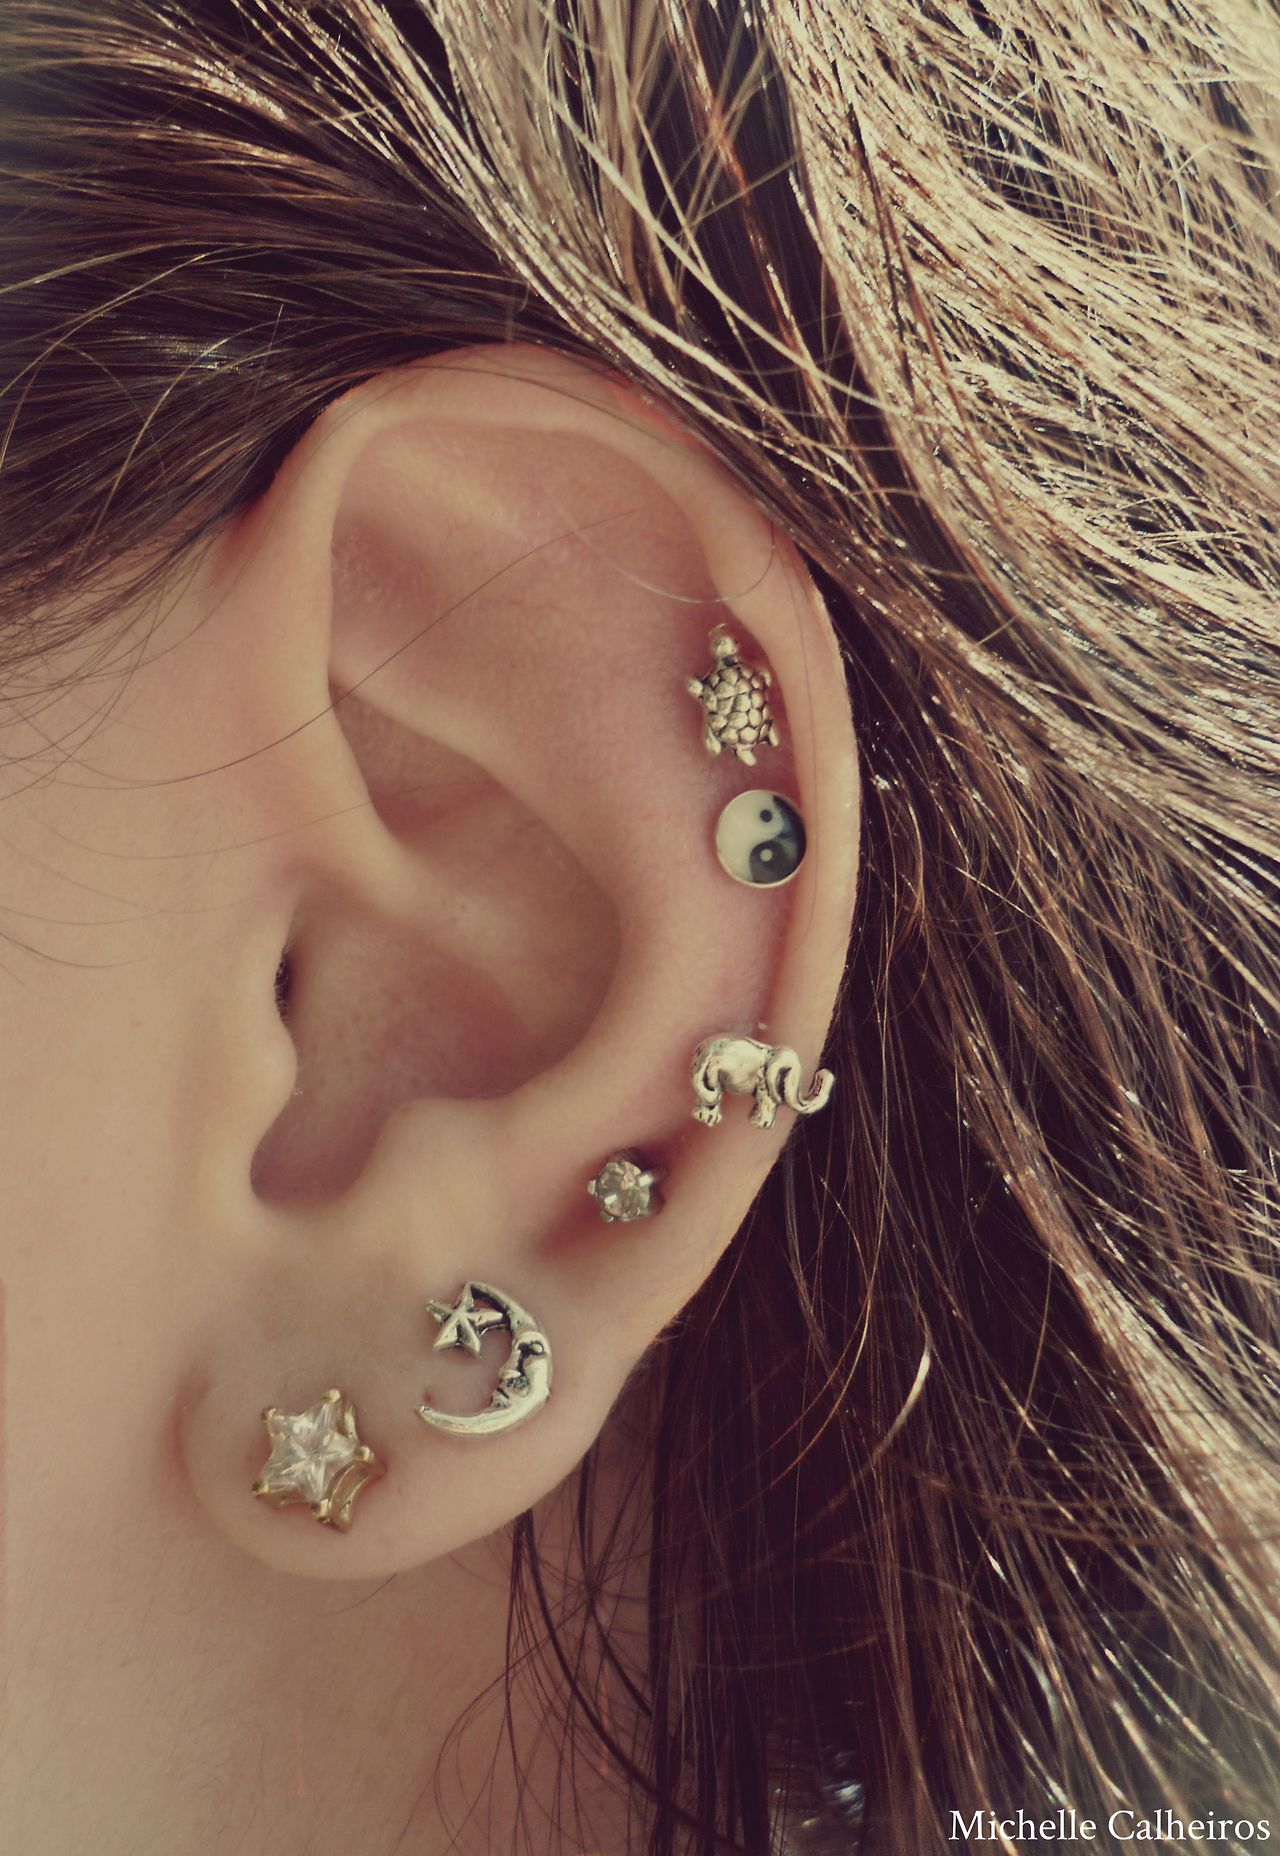 Cute nose piercing jewelry  Donut want all those piercings but LOVE the earrings only